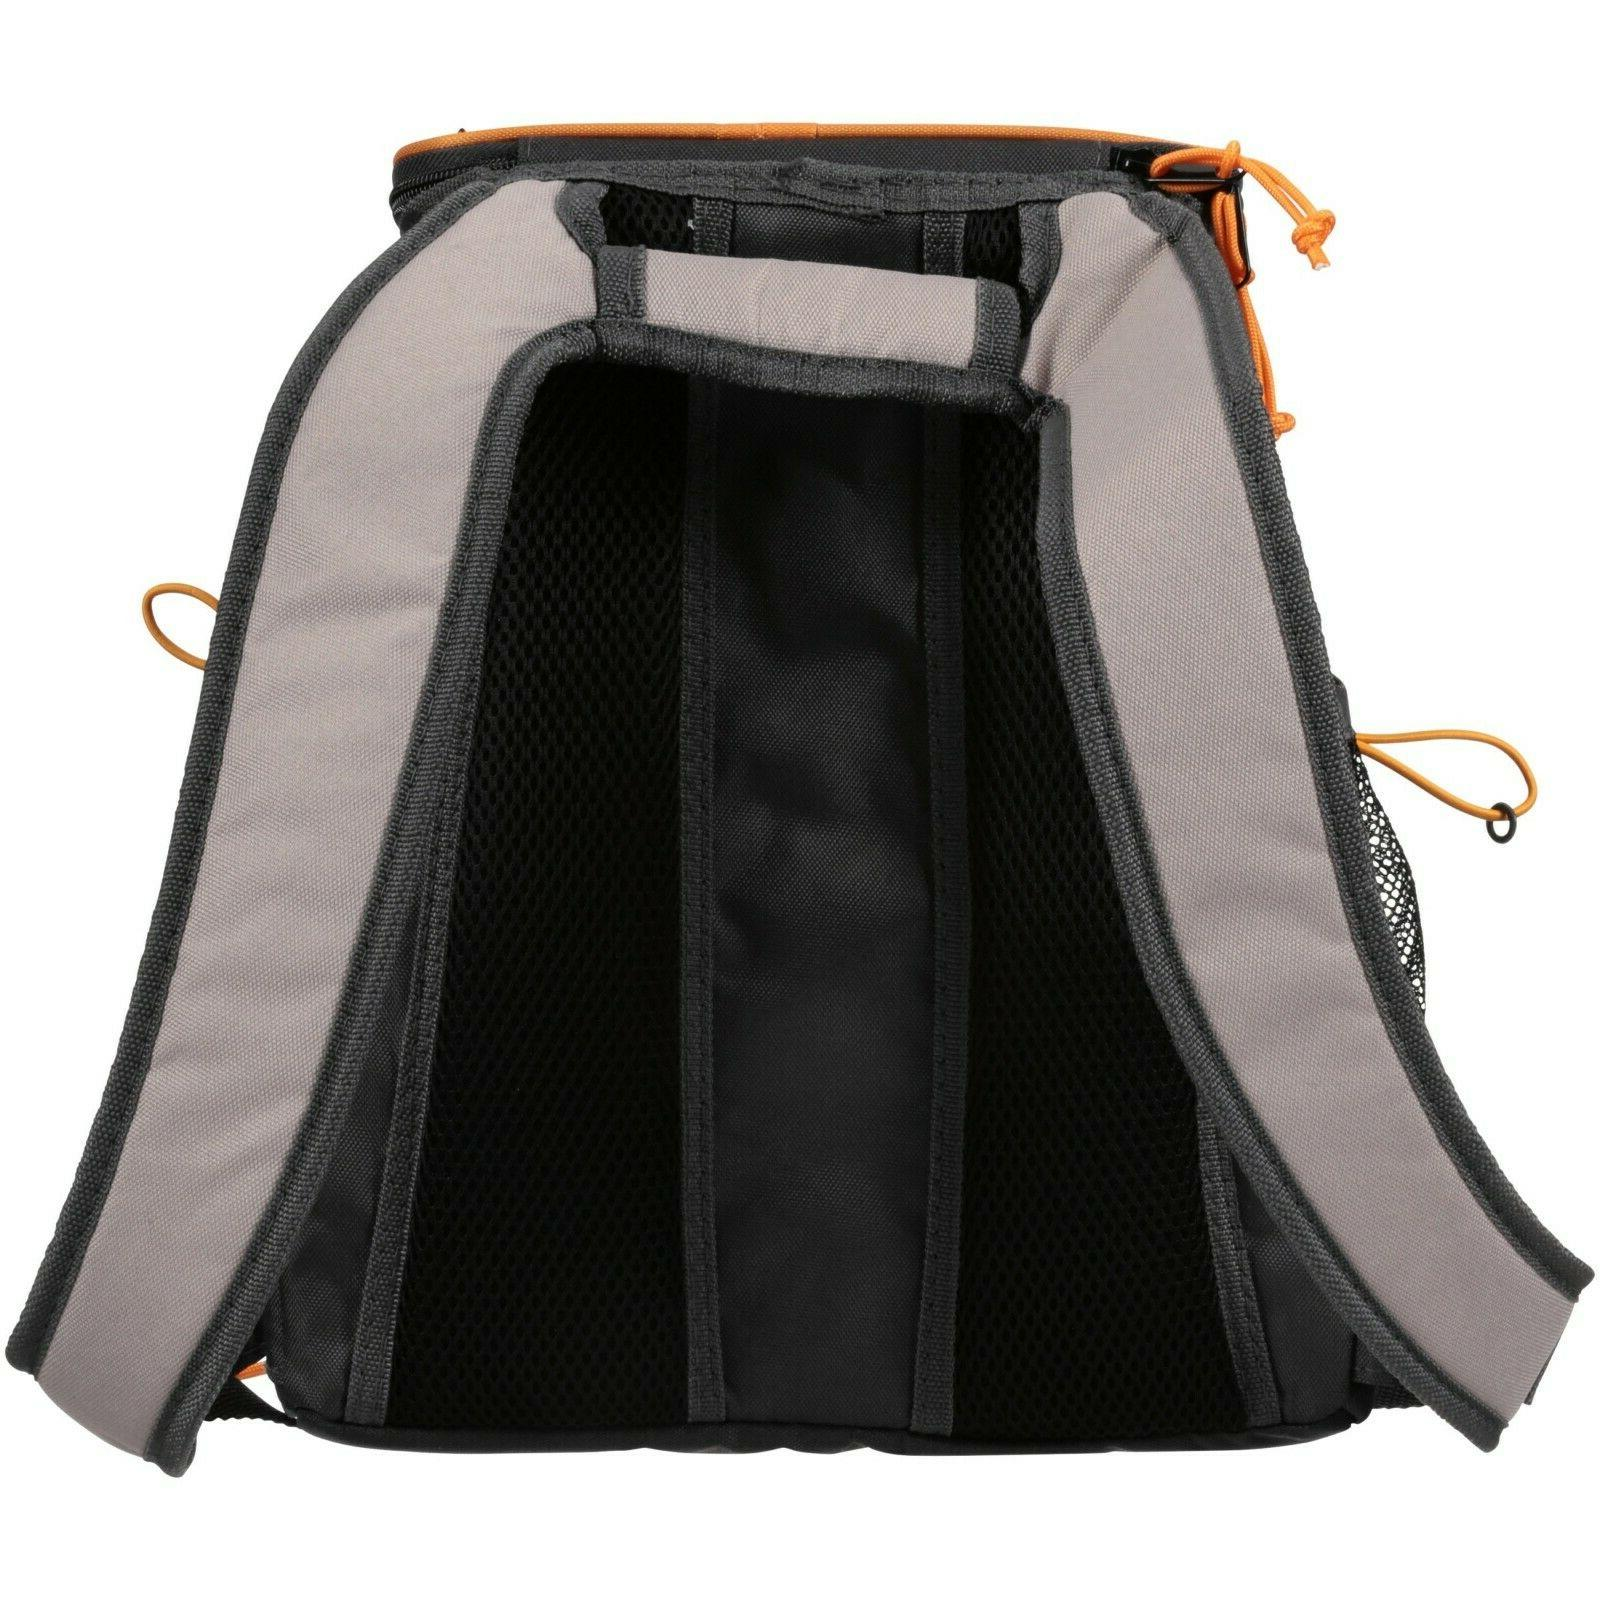 Backpack Cooler Camping Durable Sturdy Bag MaxCold Insulation